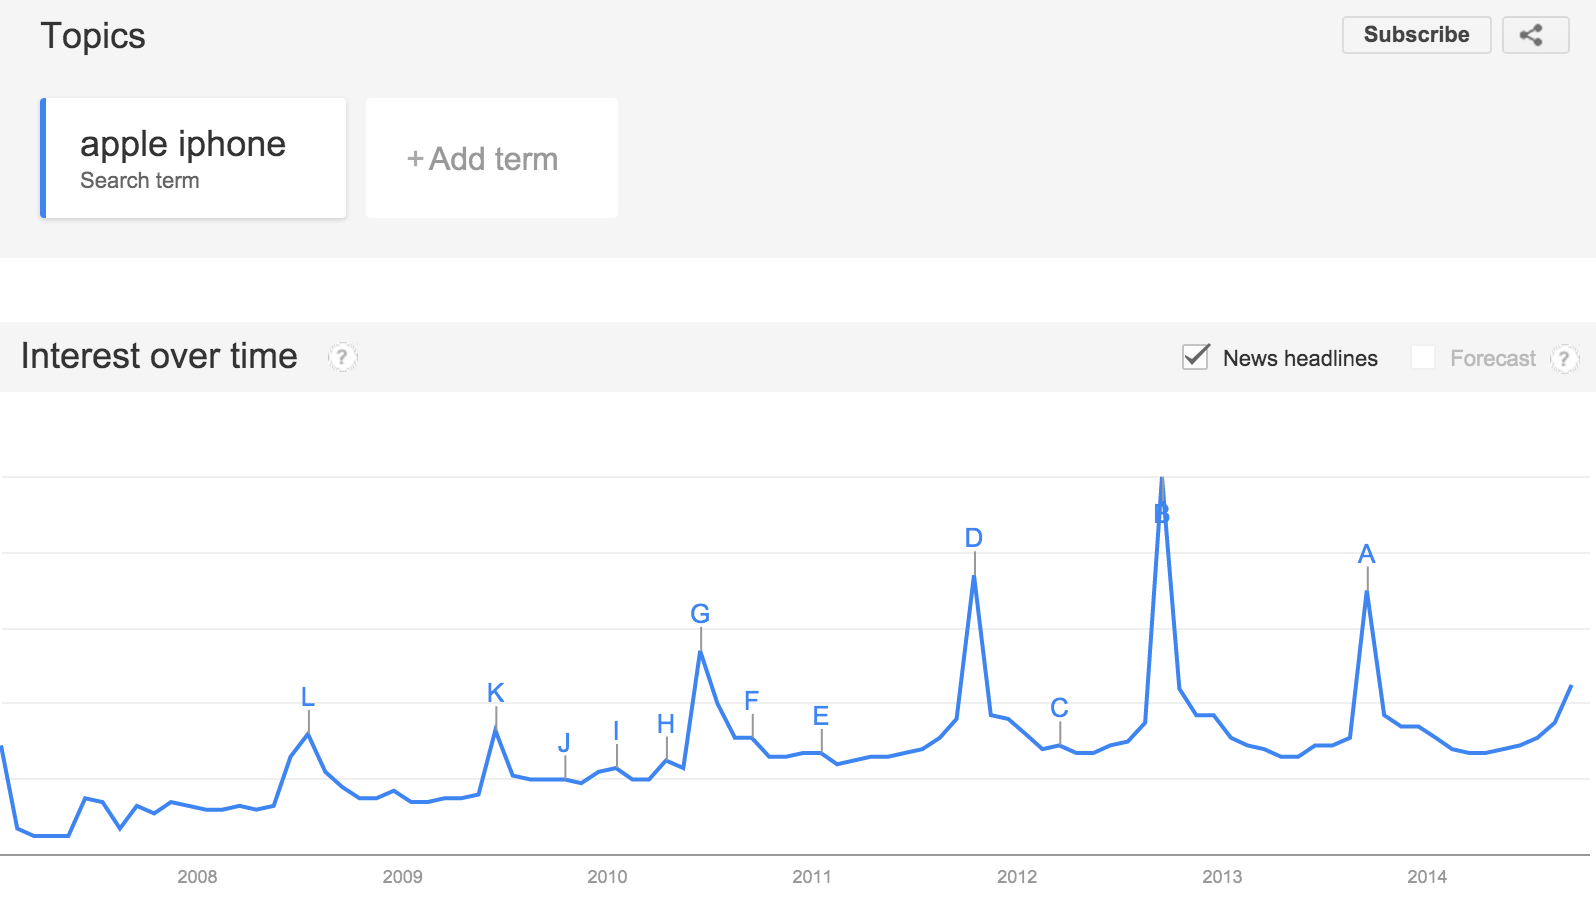 iPhone Search Term Interest Over Time, Google Trends Data